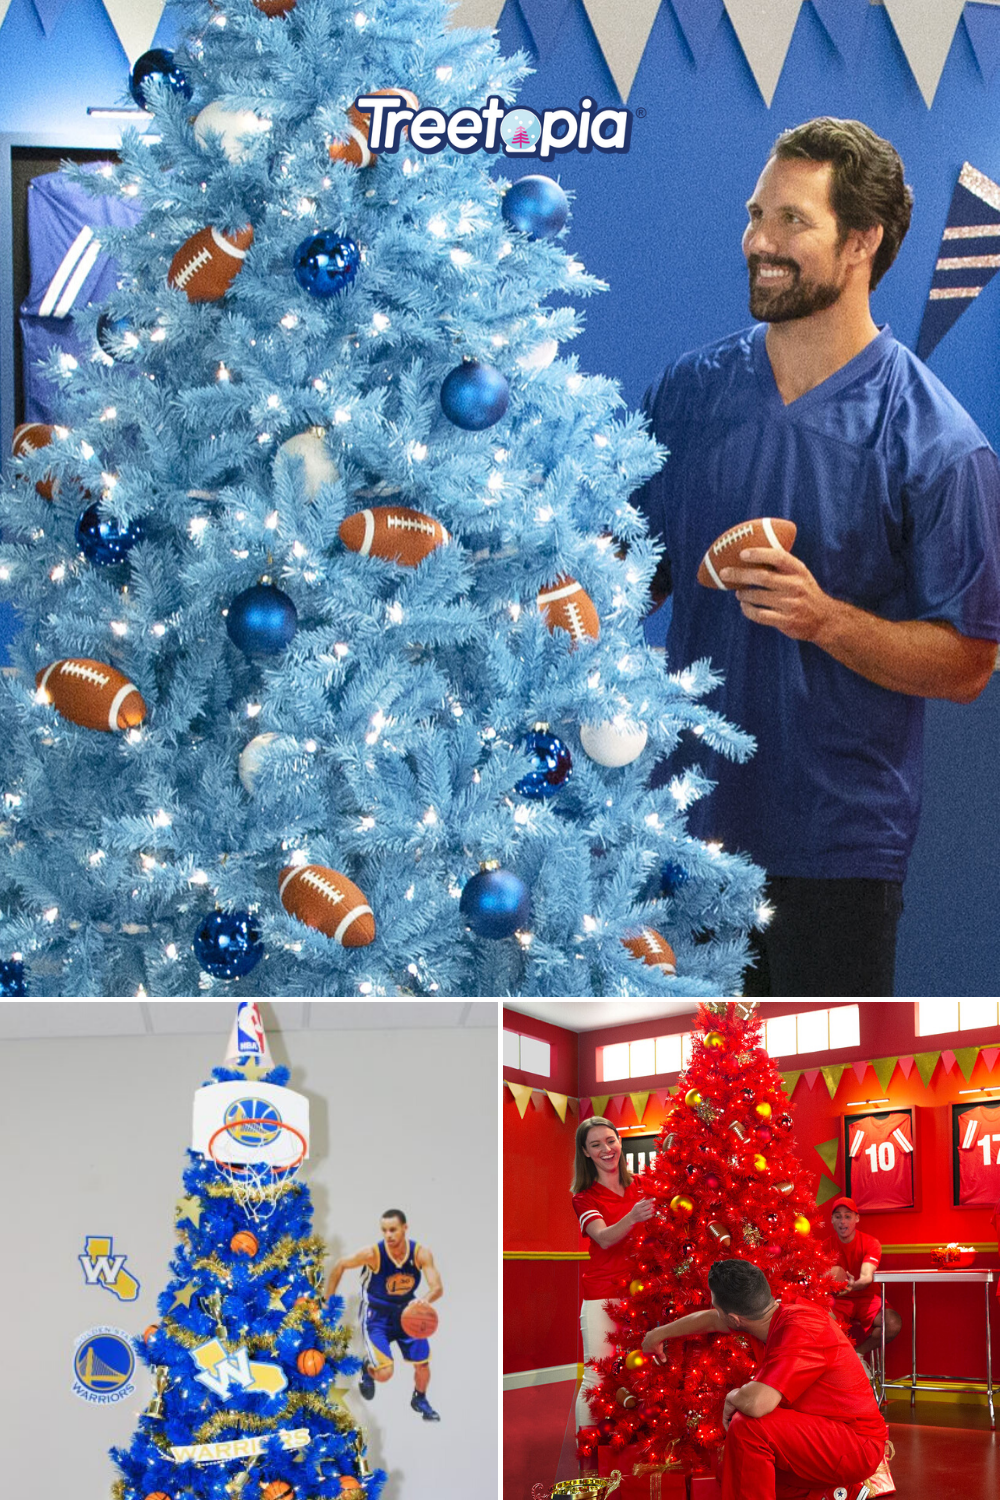 Sporting Events On Christmas Eve 2020 Sports Themed Christmas Trees in 2020 | Christmas tree themes